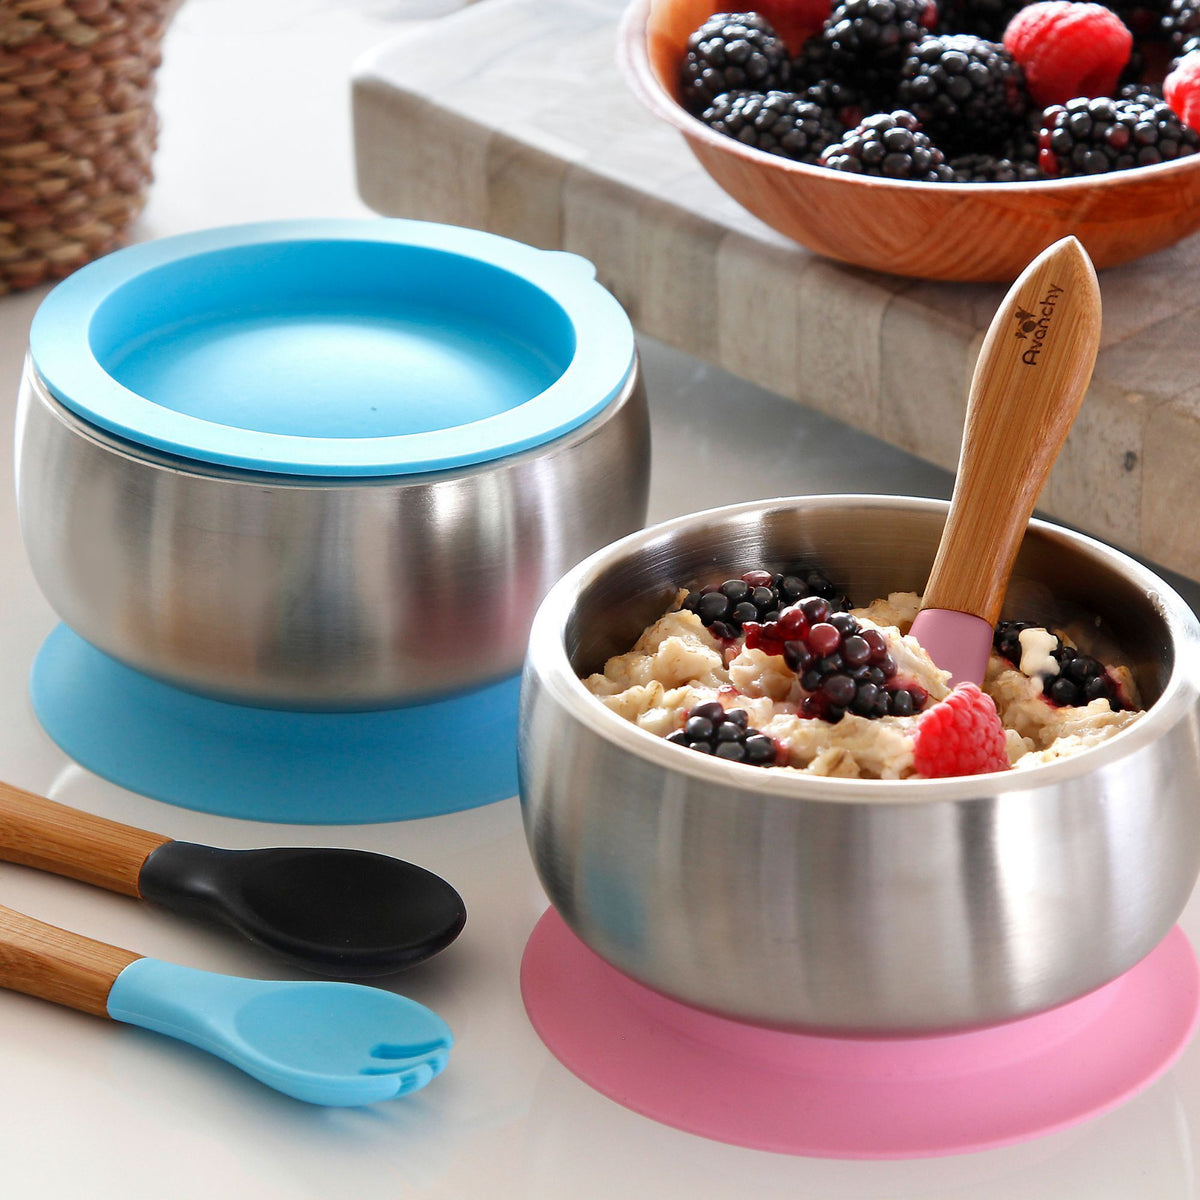 Stainless Steel Suction Bowl & Lid